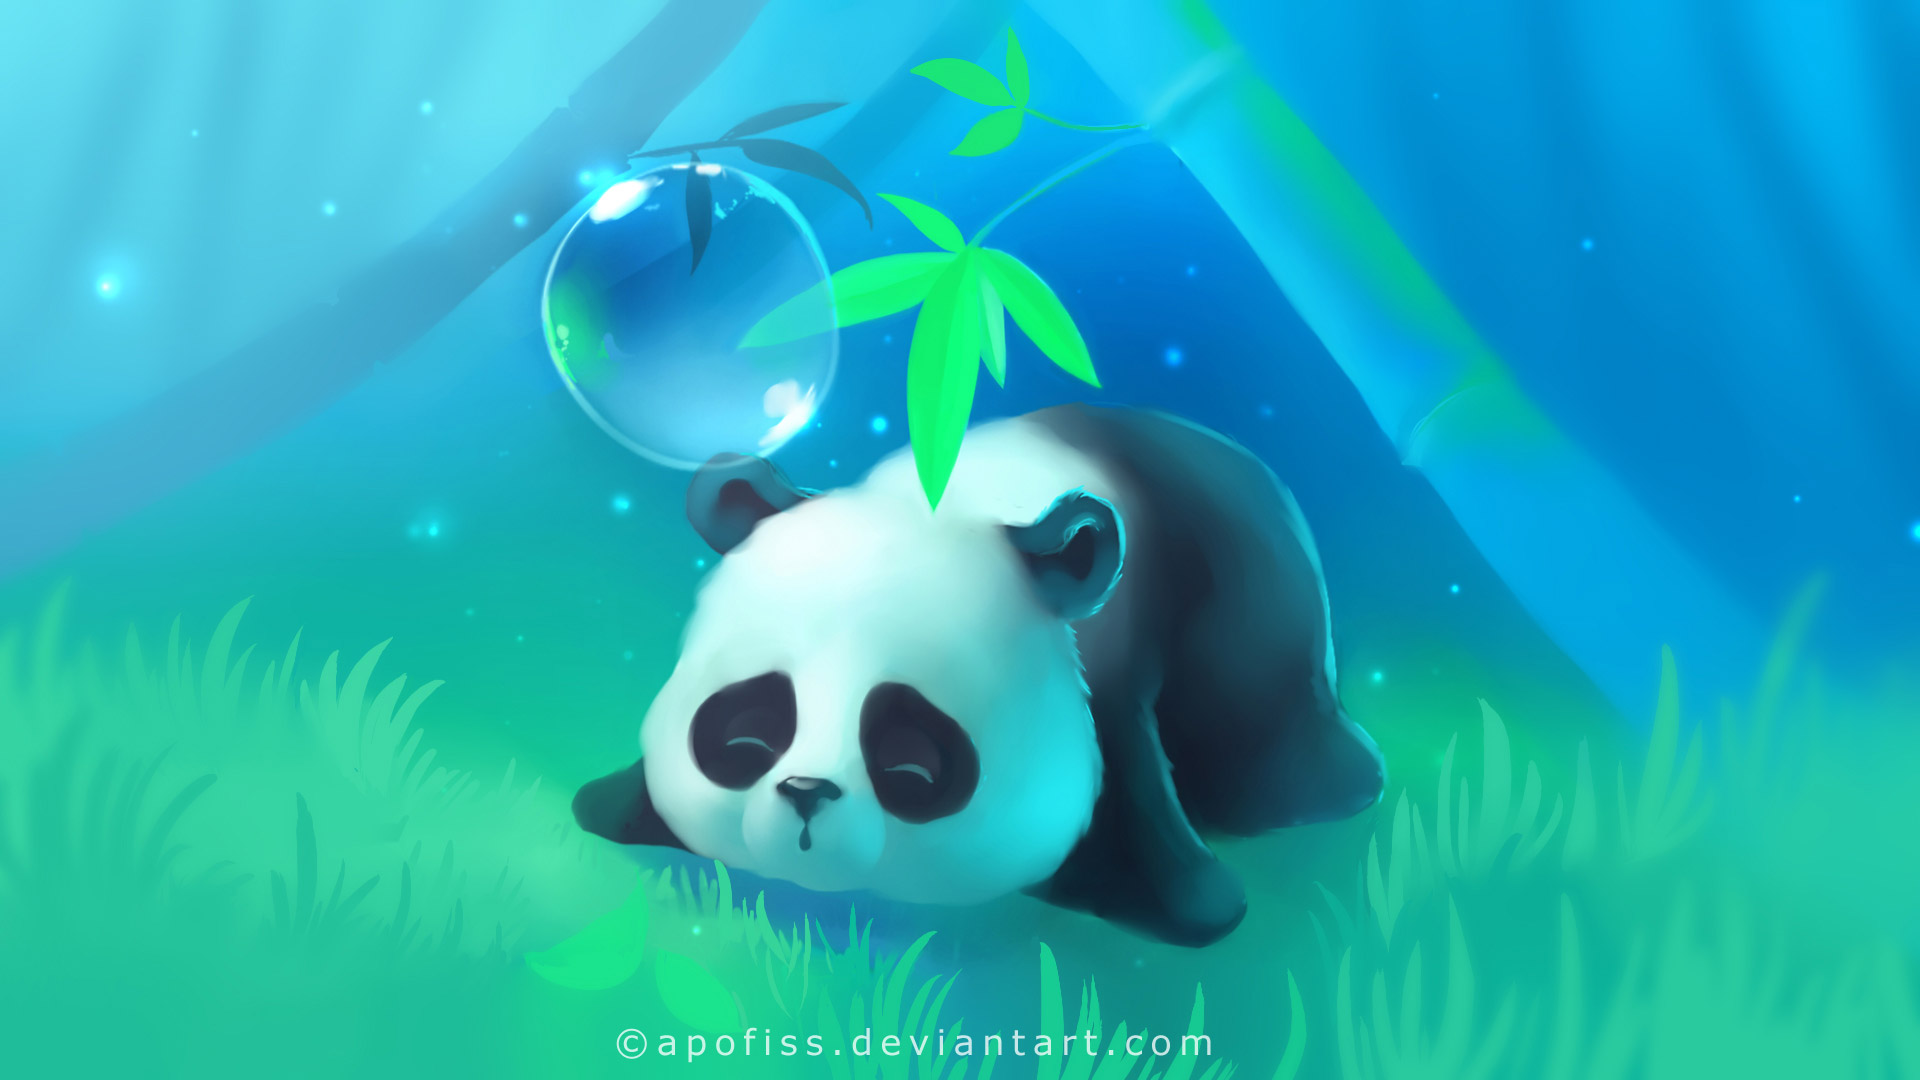 Cute Baby Panda Wallpaper Desktop Background For Android For